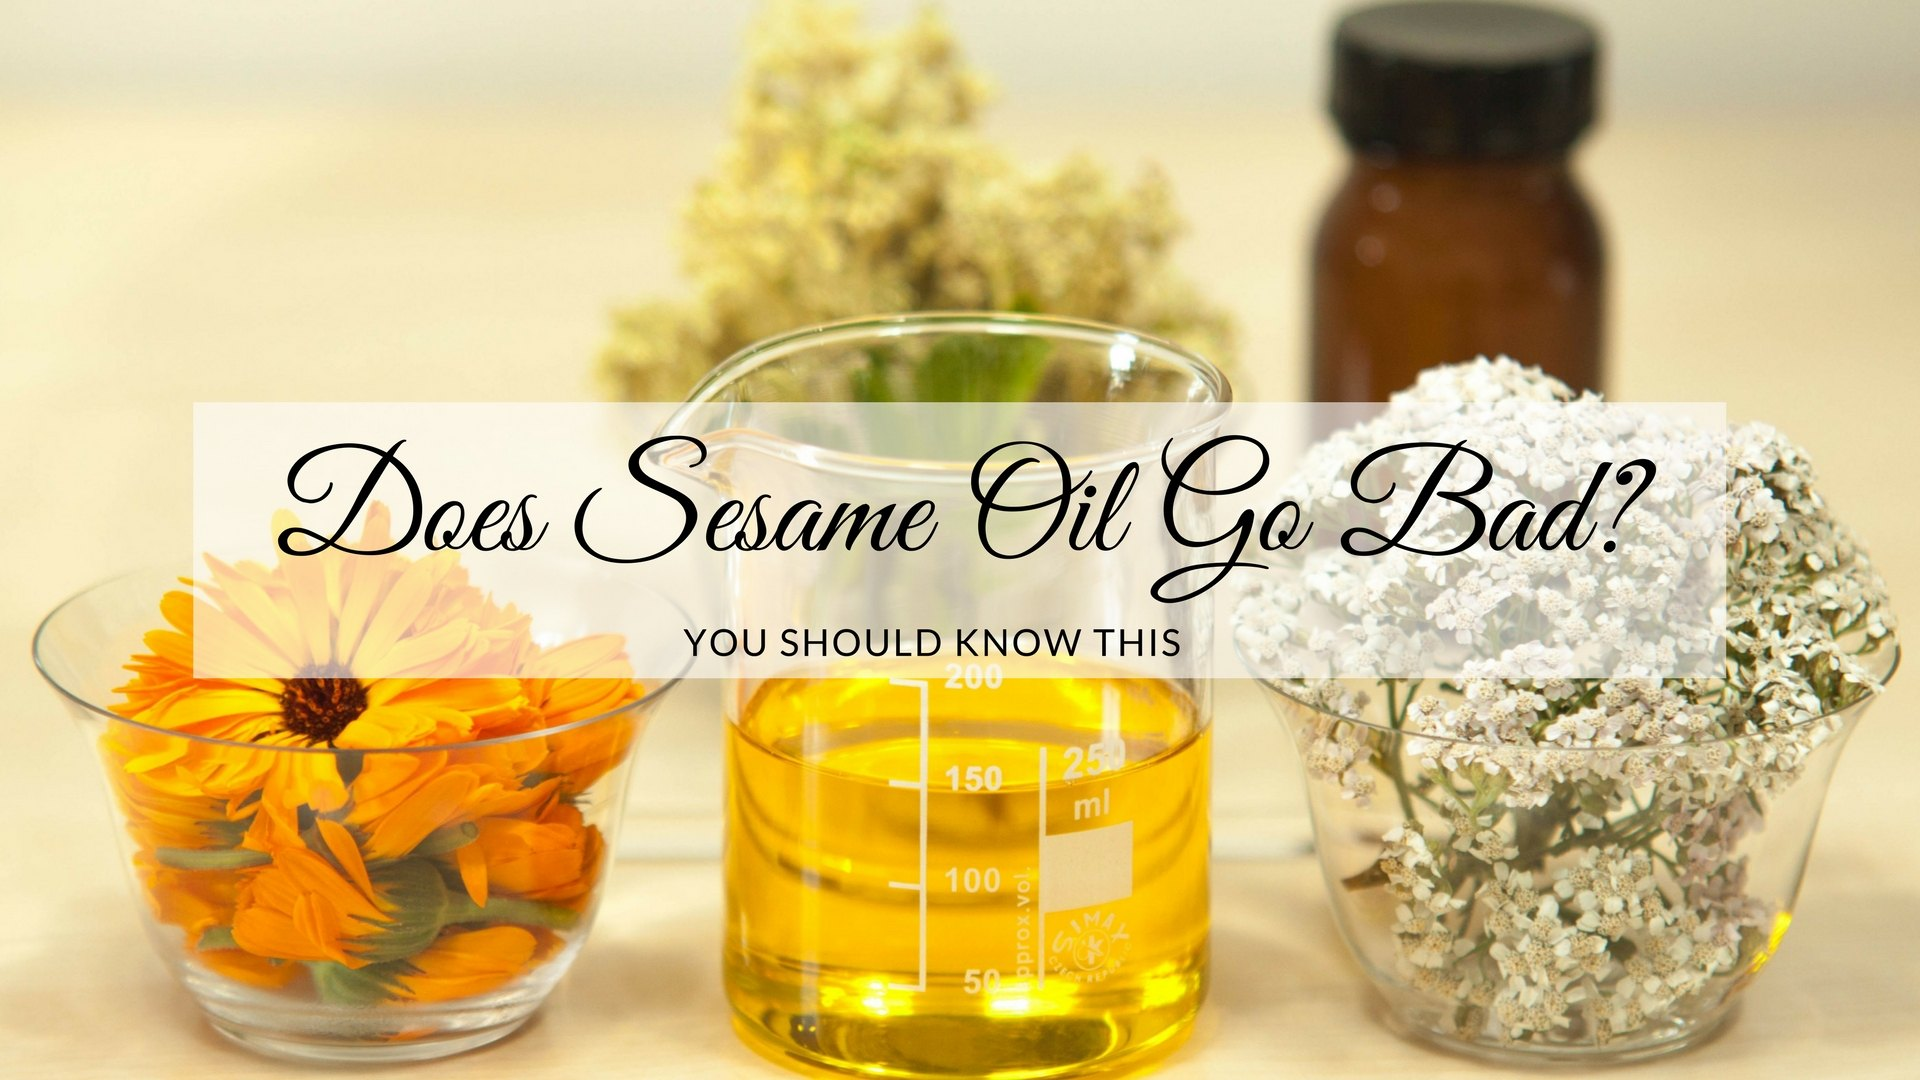 Does sesame oil go bad?